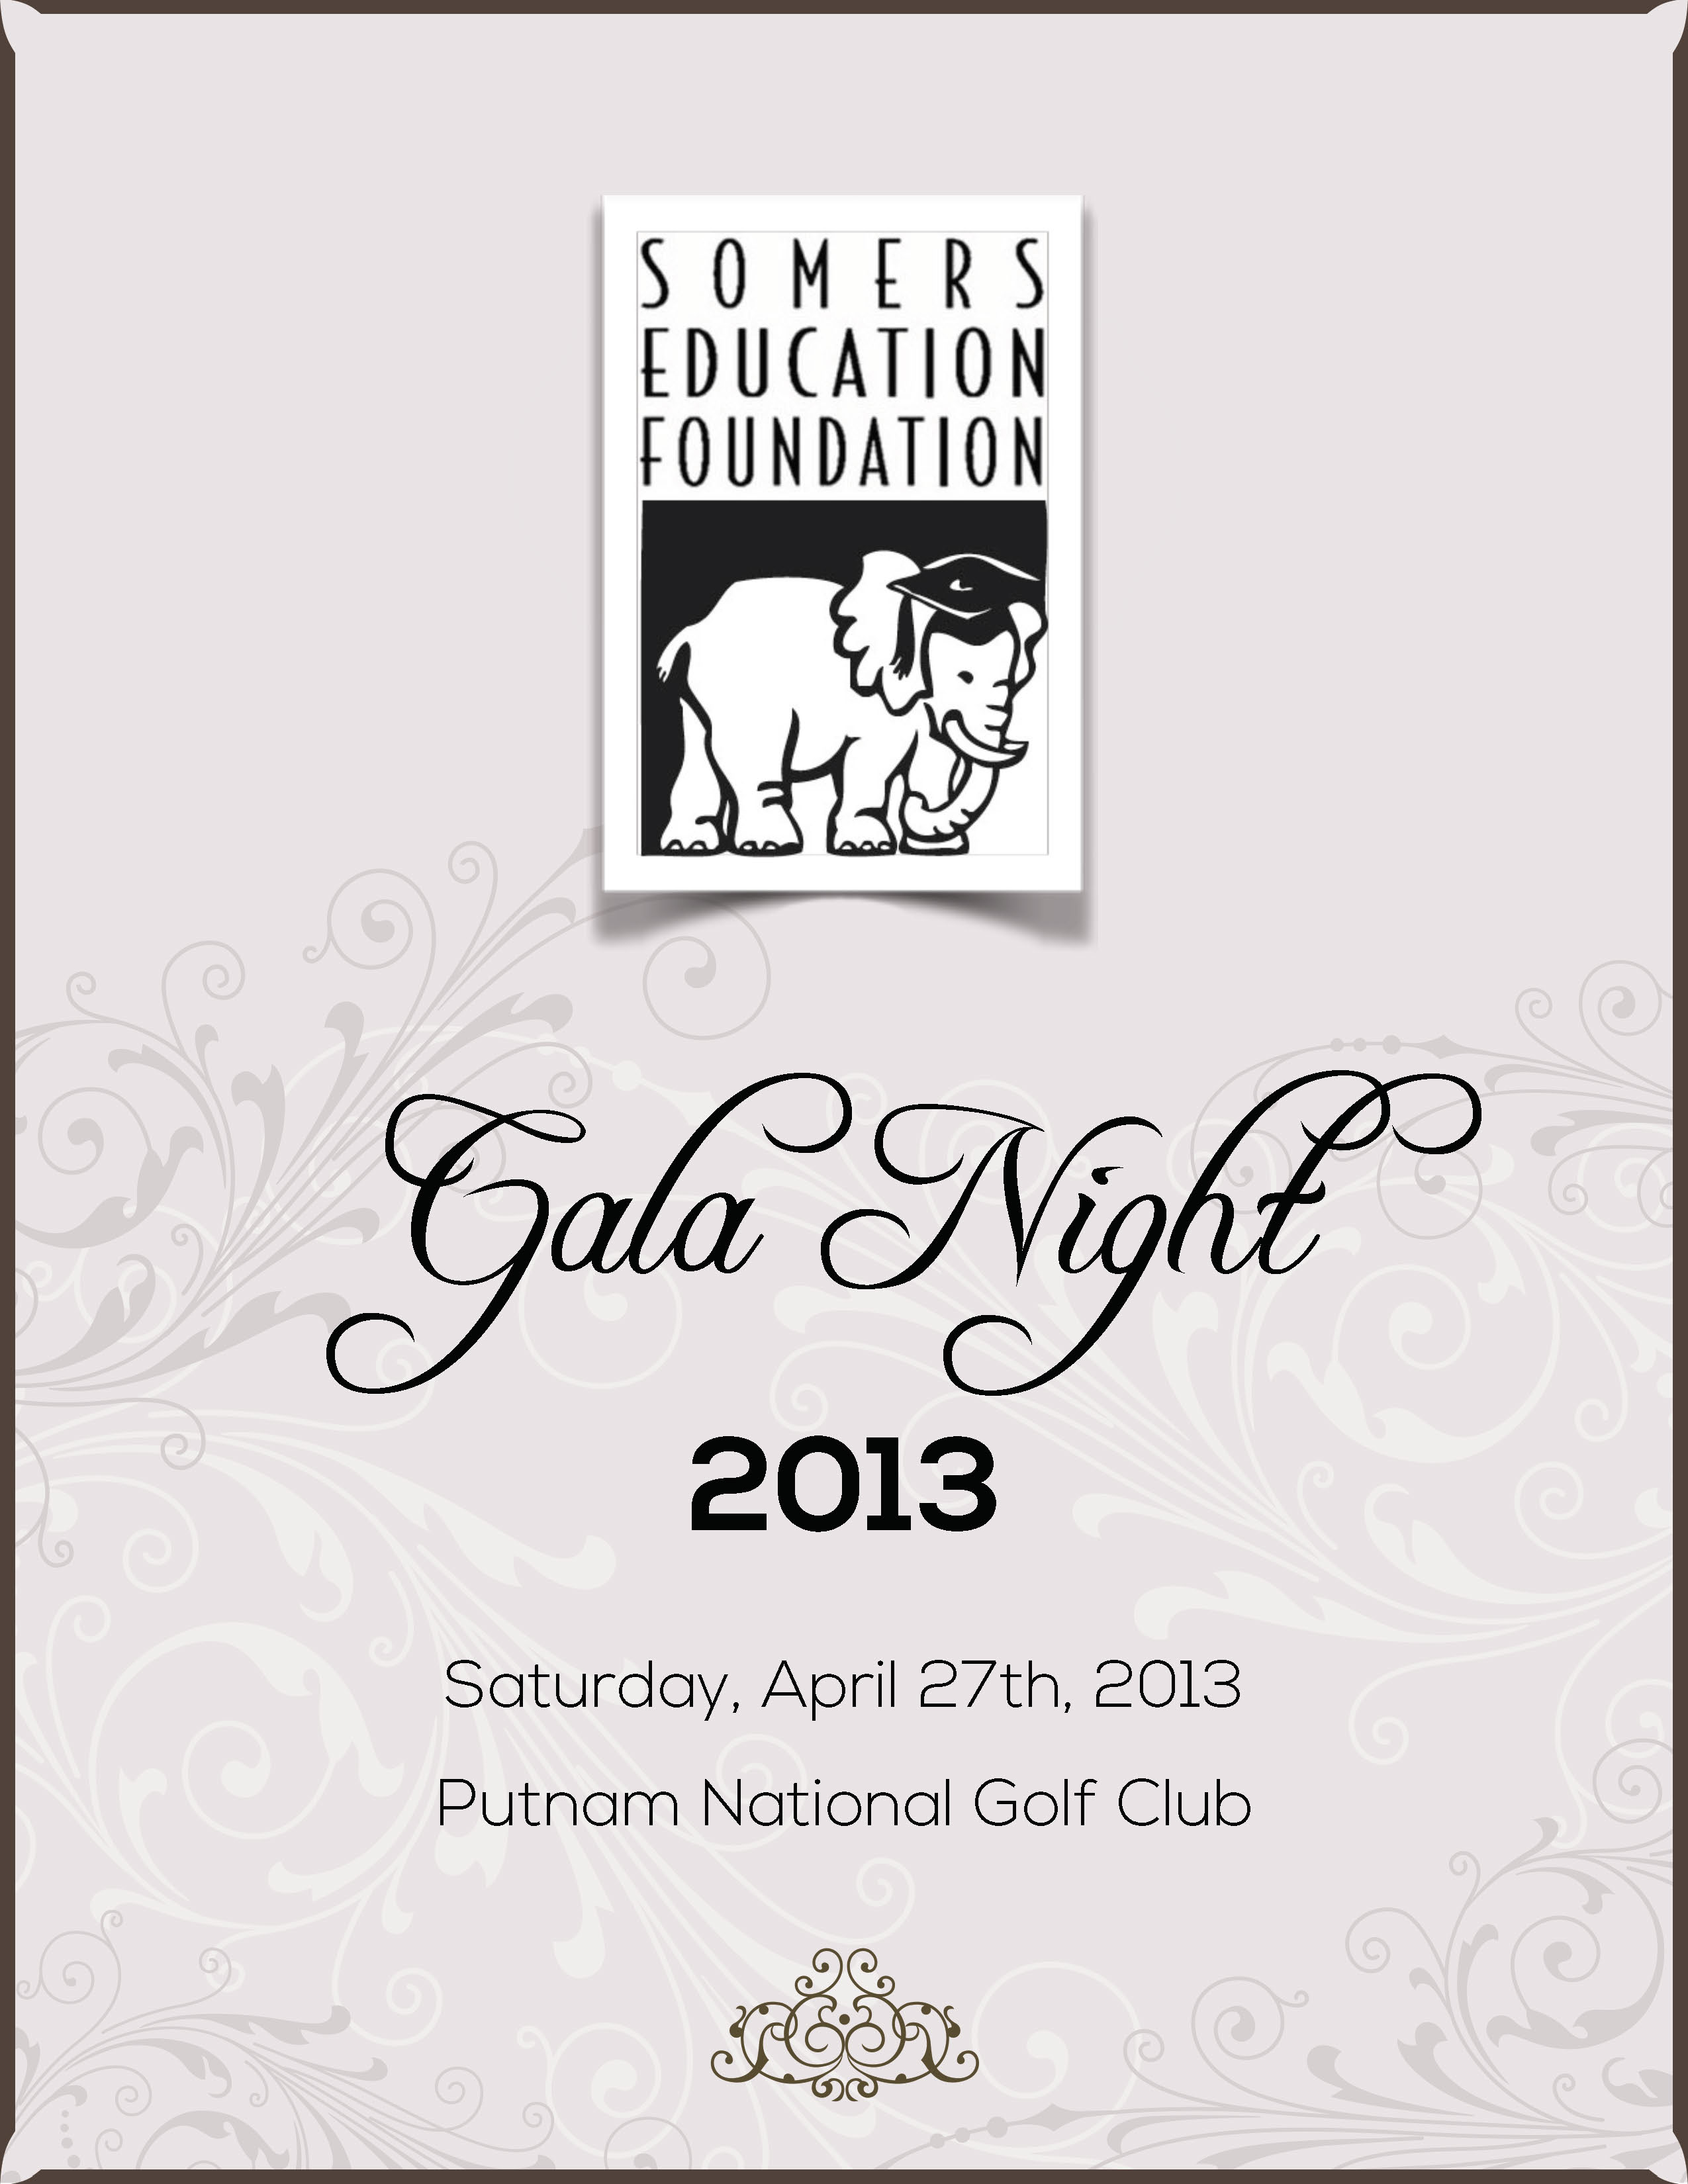 Somers Education Foundation 2013 Printed Gala Dinner Program Cover